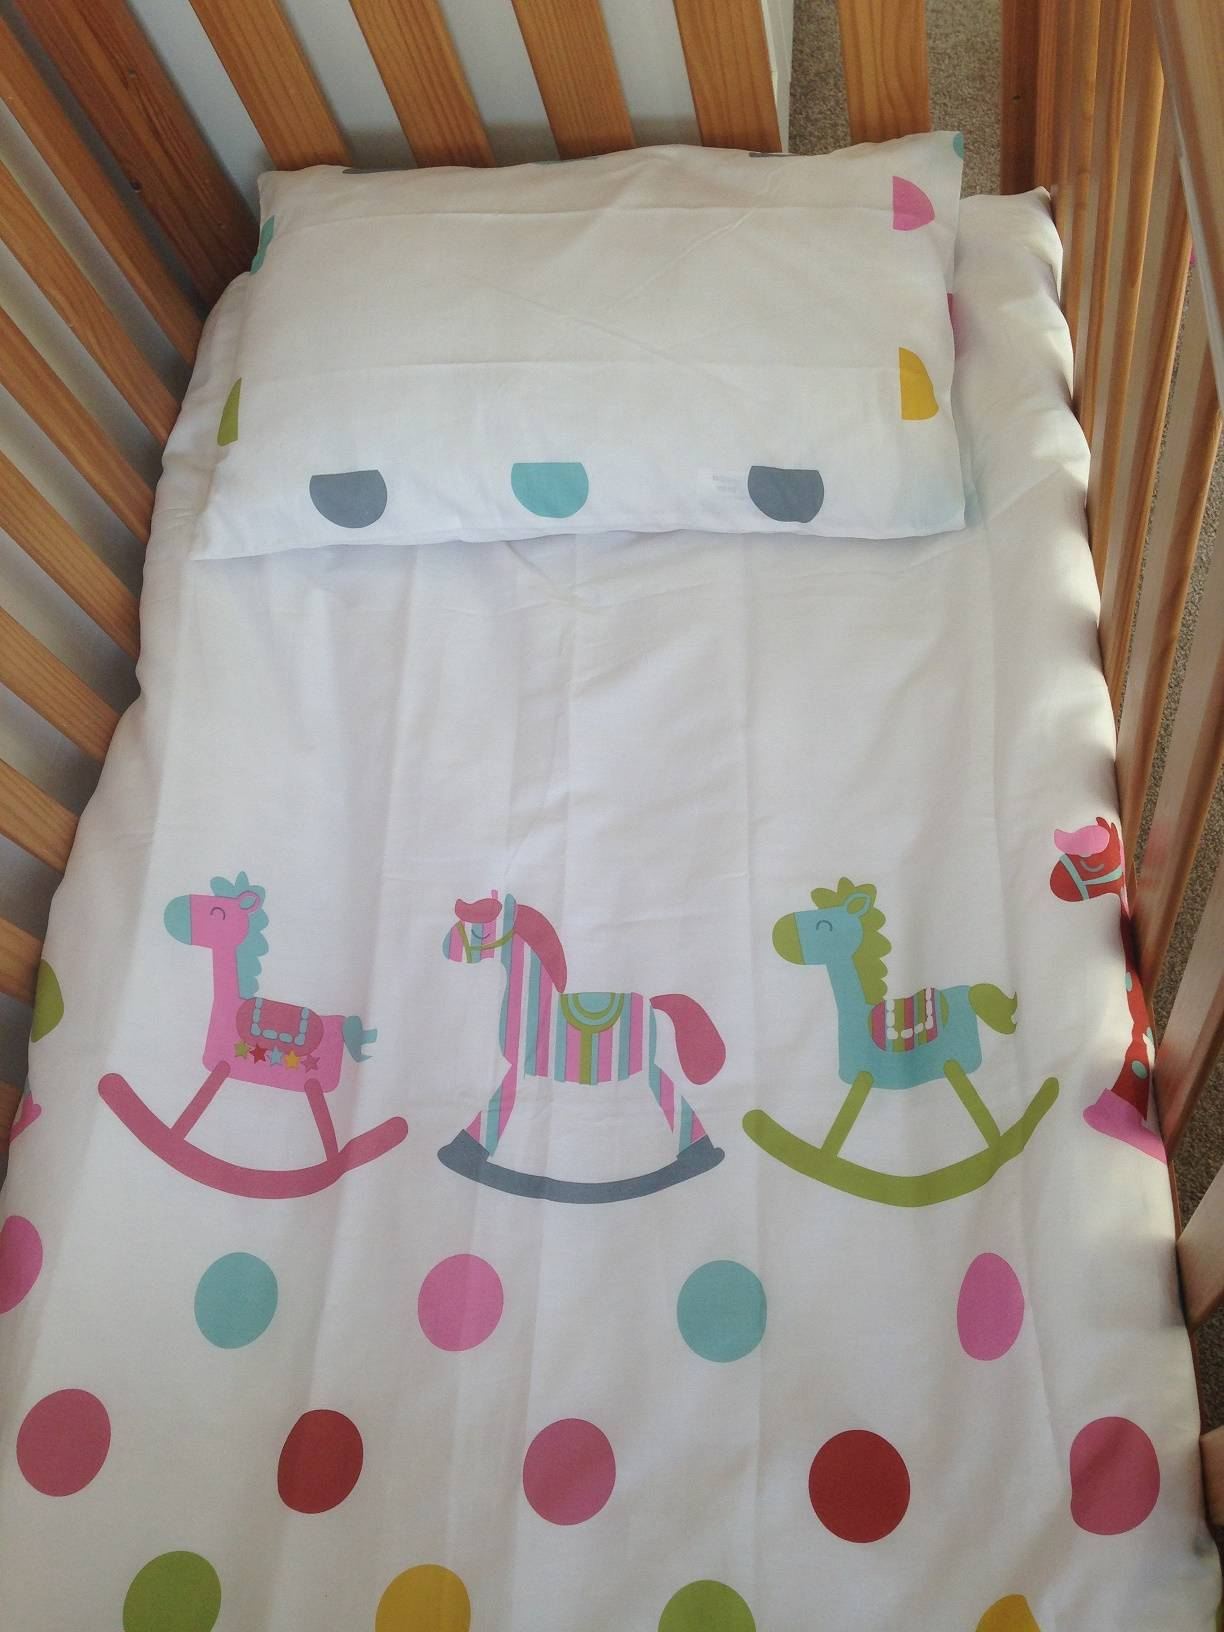 Baroo Rocks n Spots Cotbed Duvet Set Review - lovefrommim.com Toddler Bed Toddler Bed Linen Toddler Duvet and Pillow Cover Set